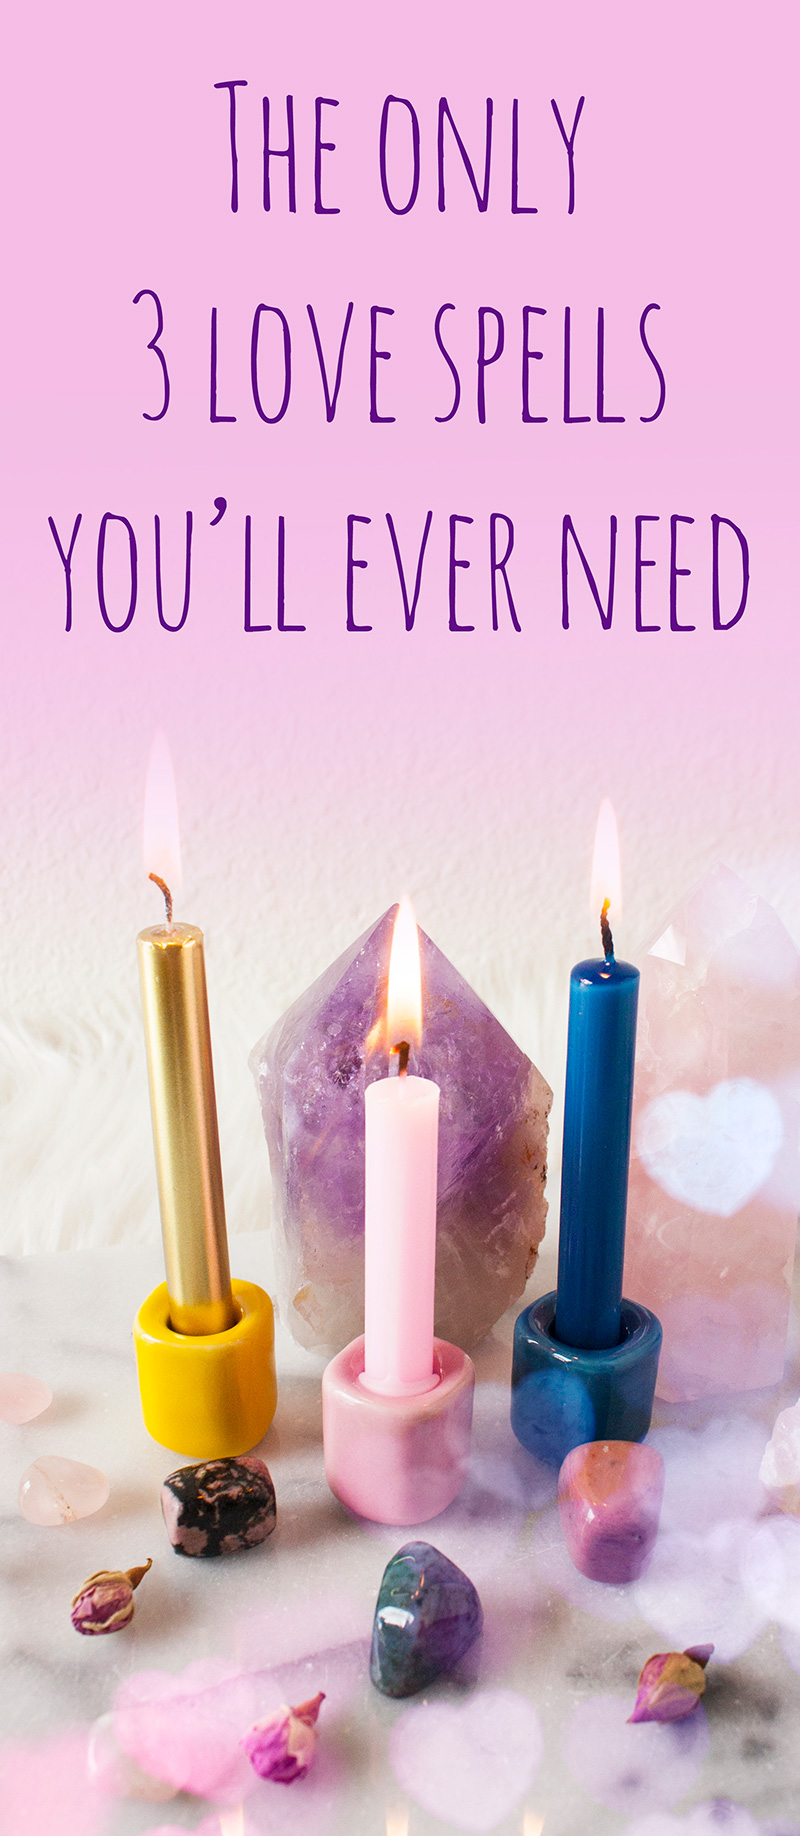 The Only 3 Love Spells You'll Ever Need | Zenned Out